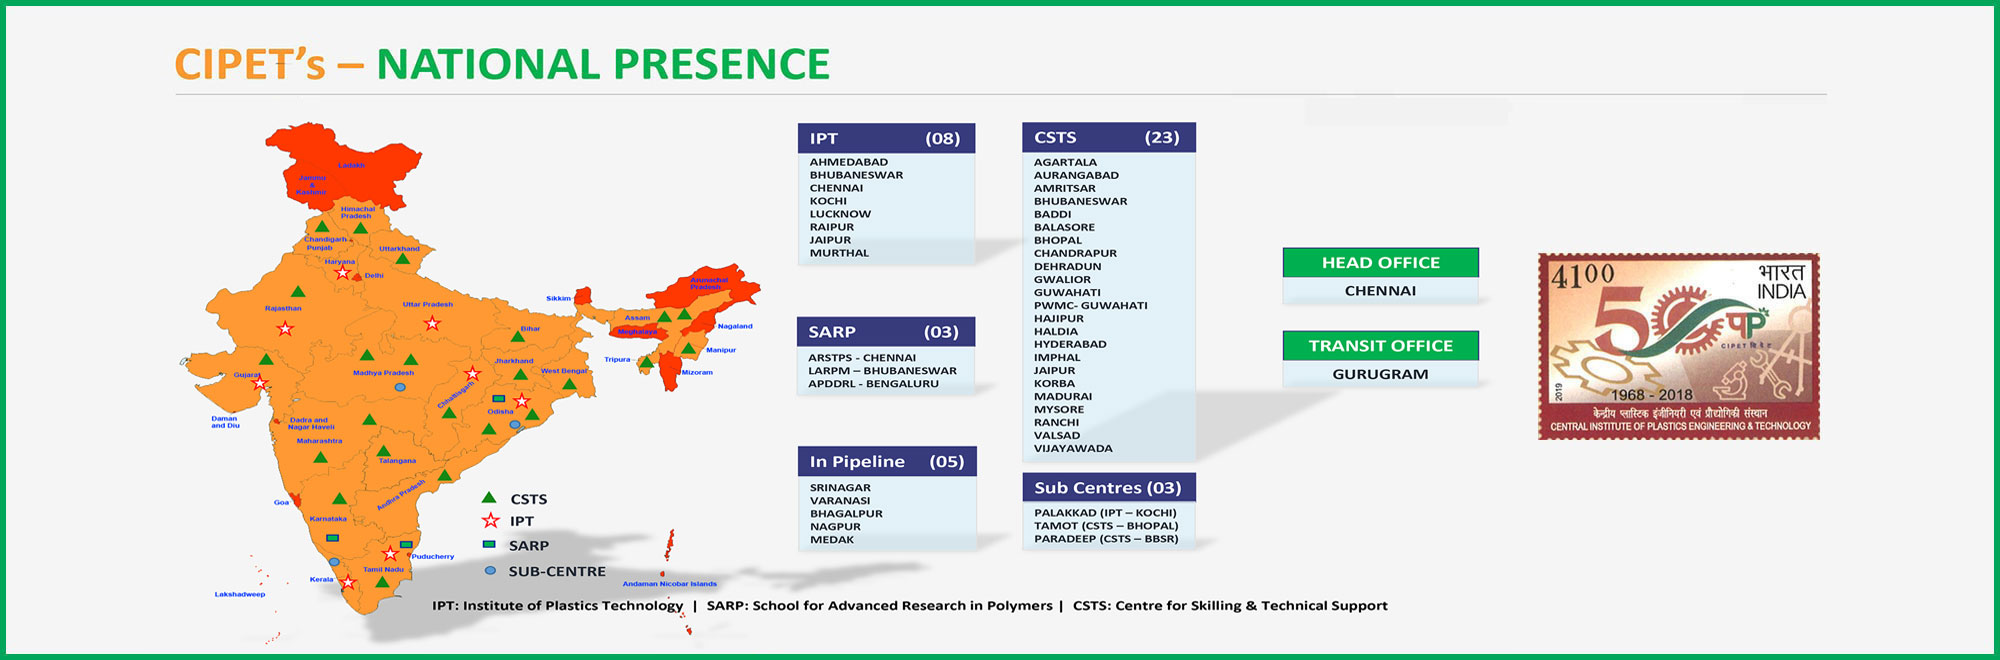 CIPET's - NATIONAL PRESENCE